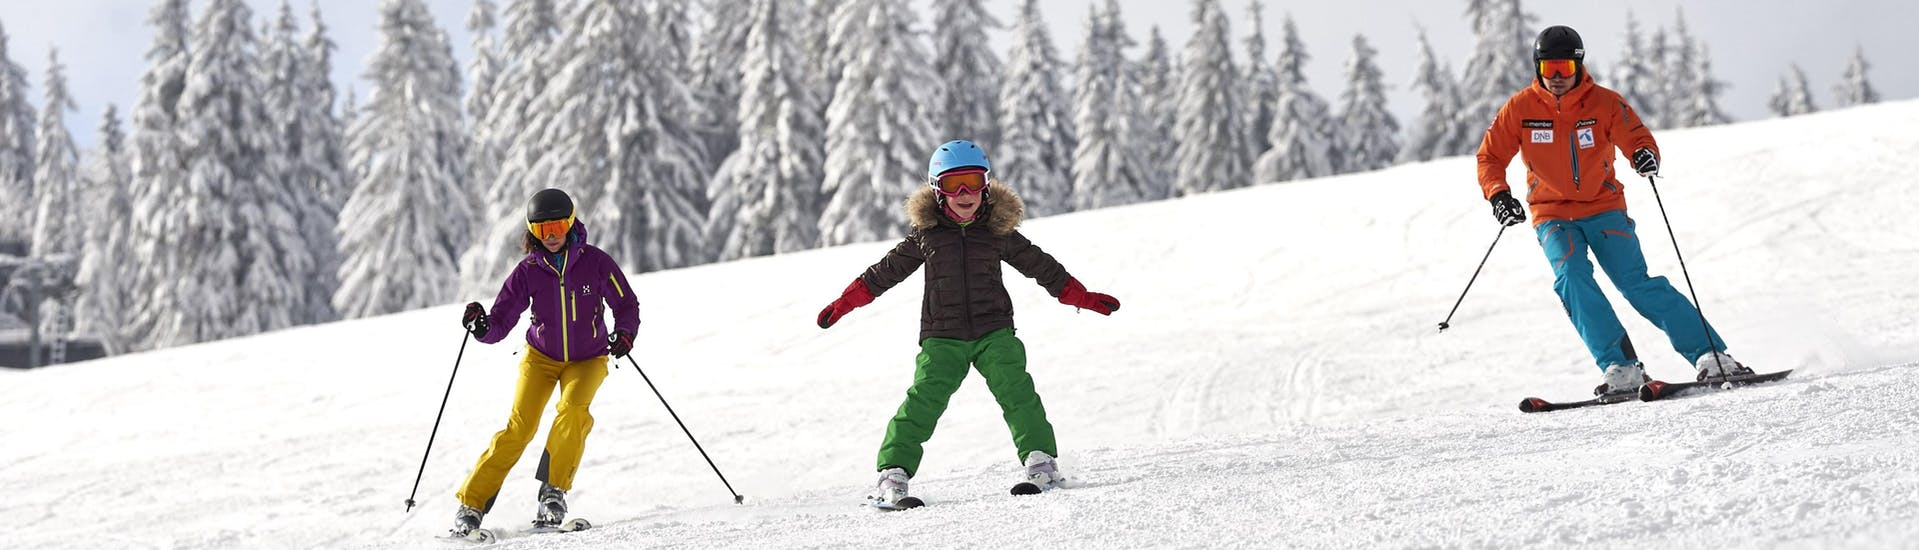 A family of two adults and one child is jointly skiing down a ski slope on Großer Arber, a popular German ski resort in which you can book ski lessons with one of the local ski schools.